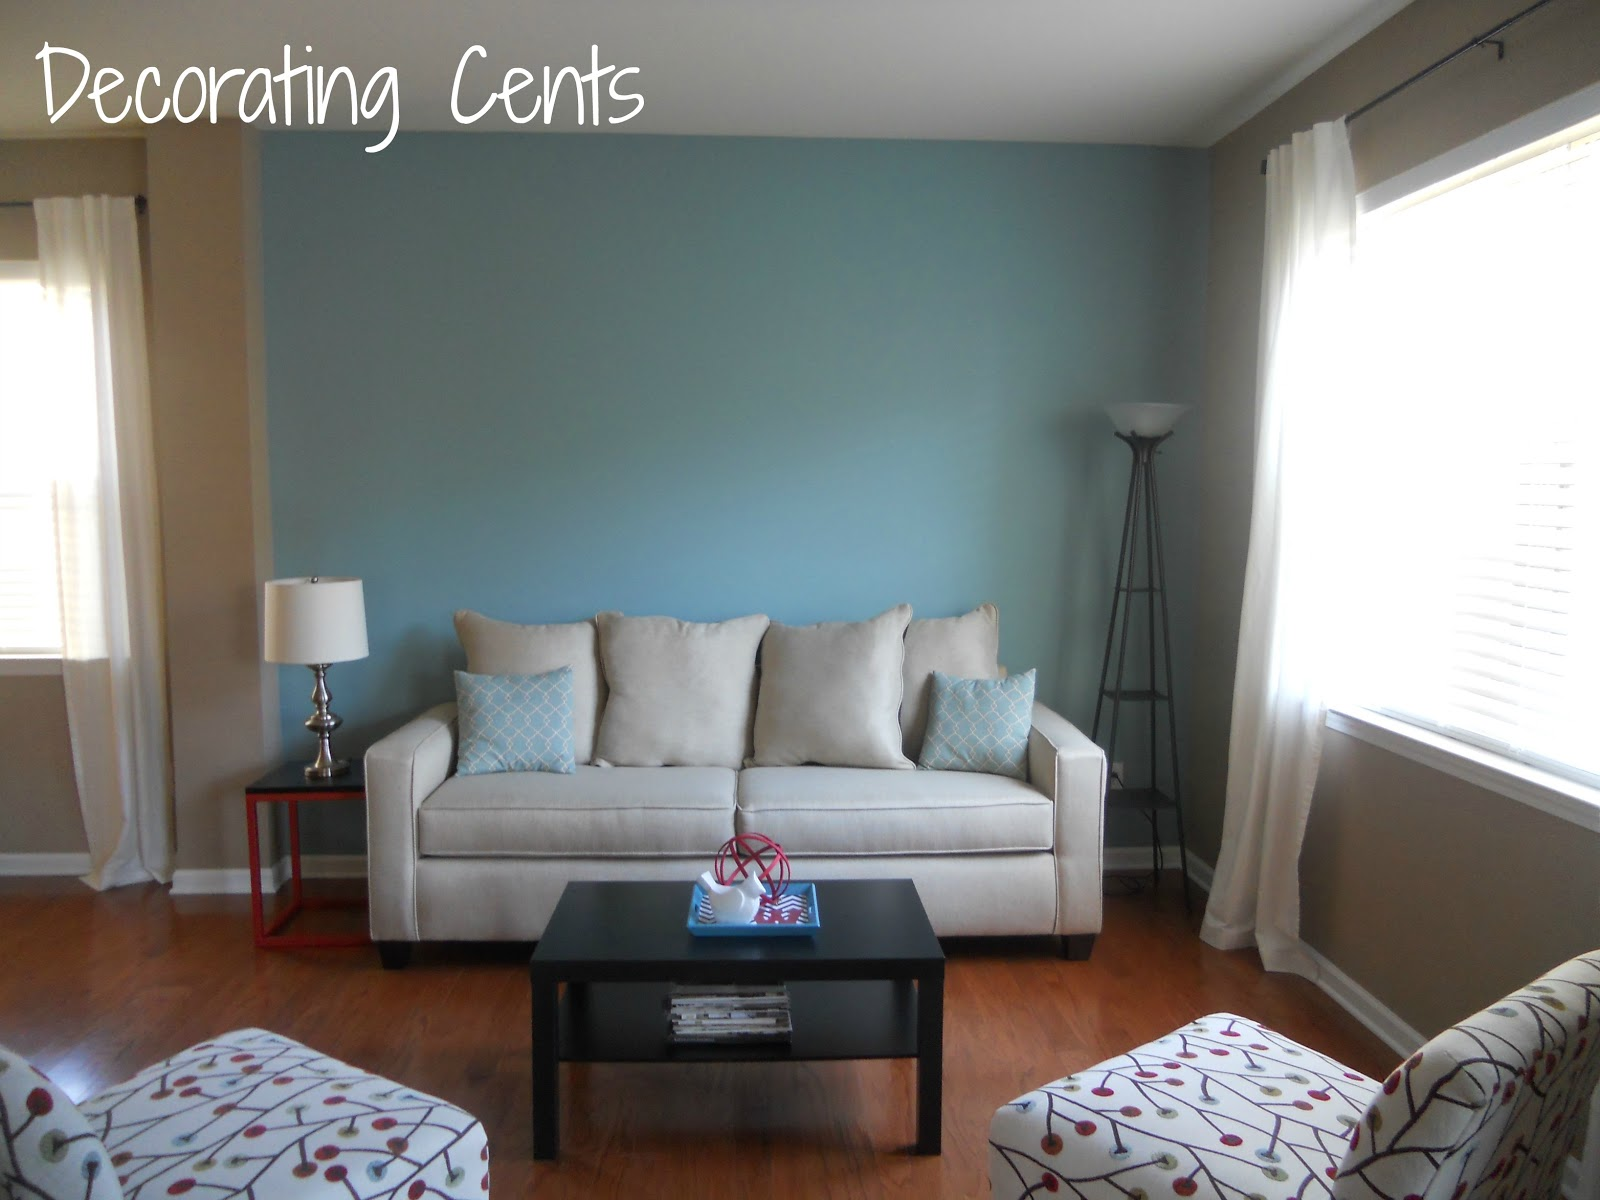 Decorating cents november 2012 - Blue accent walls for living room ...